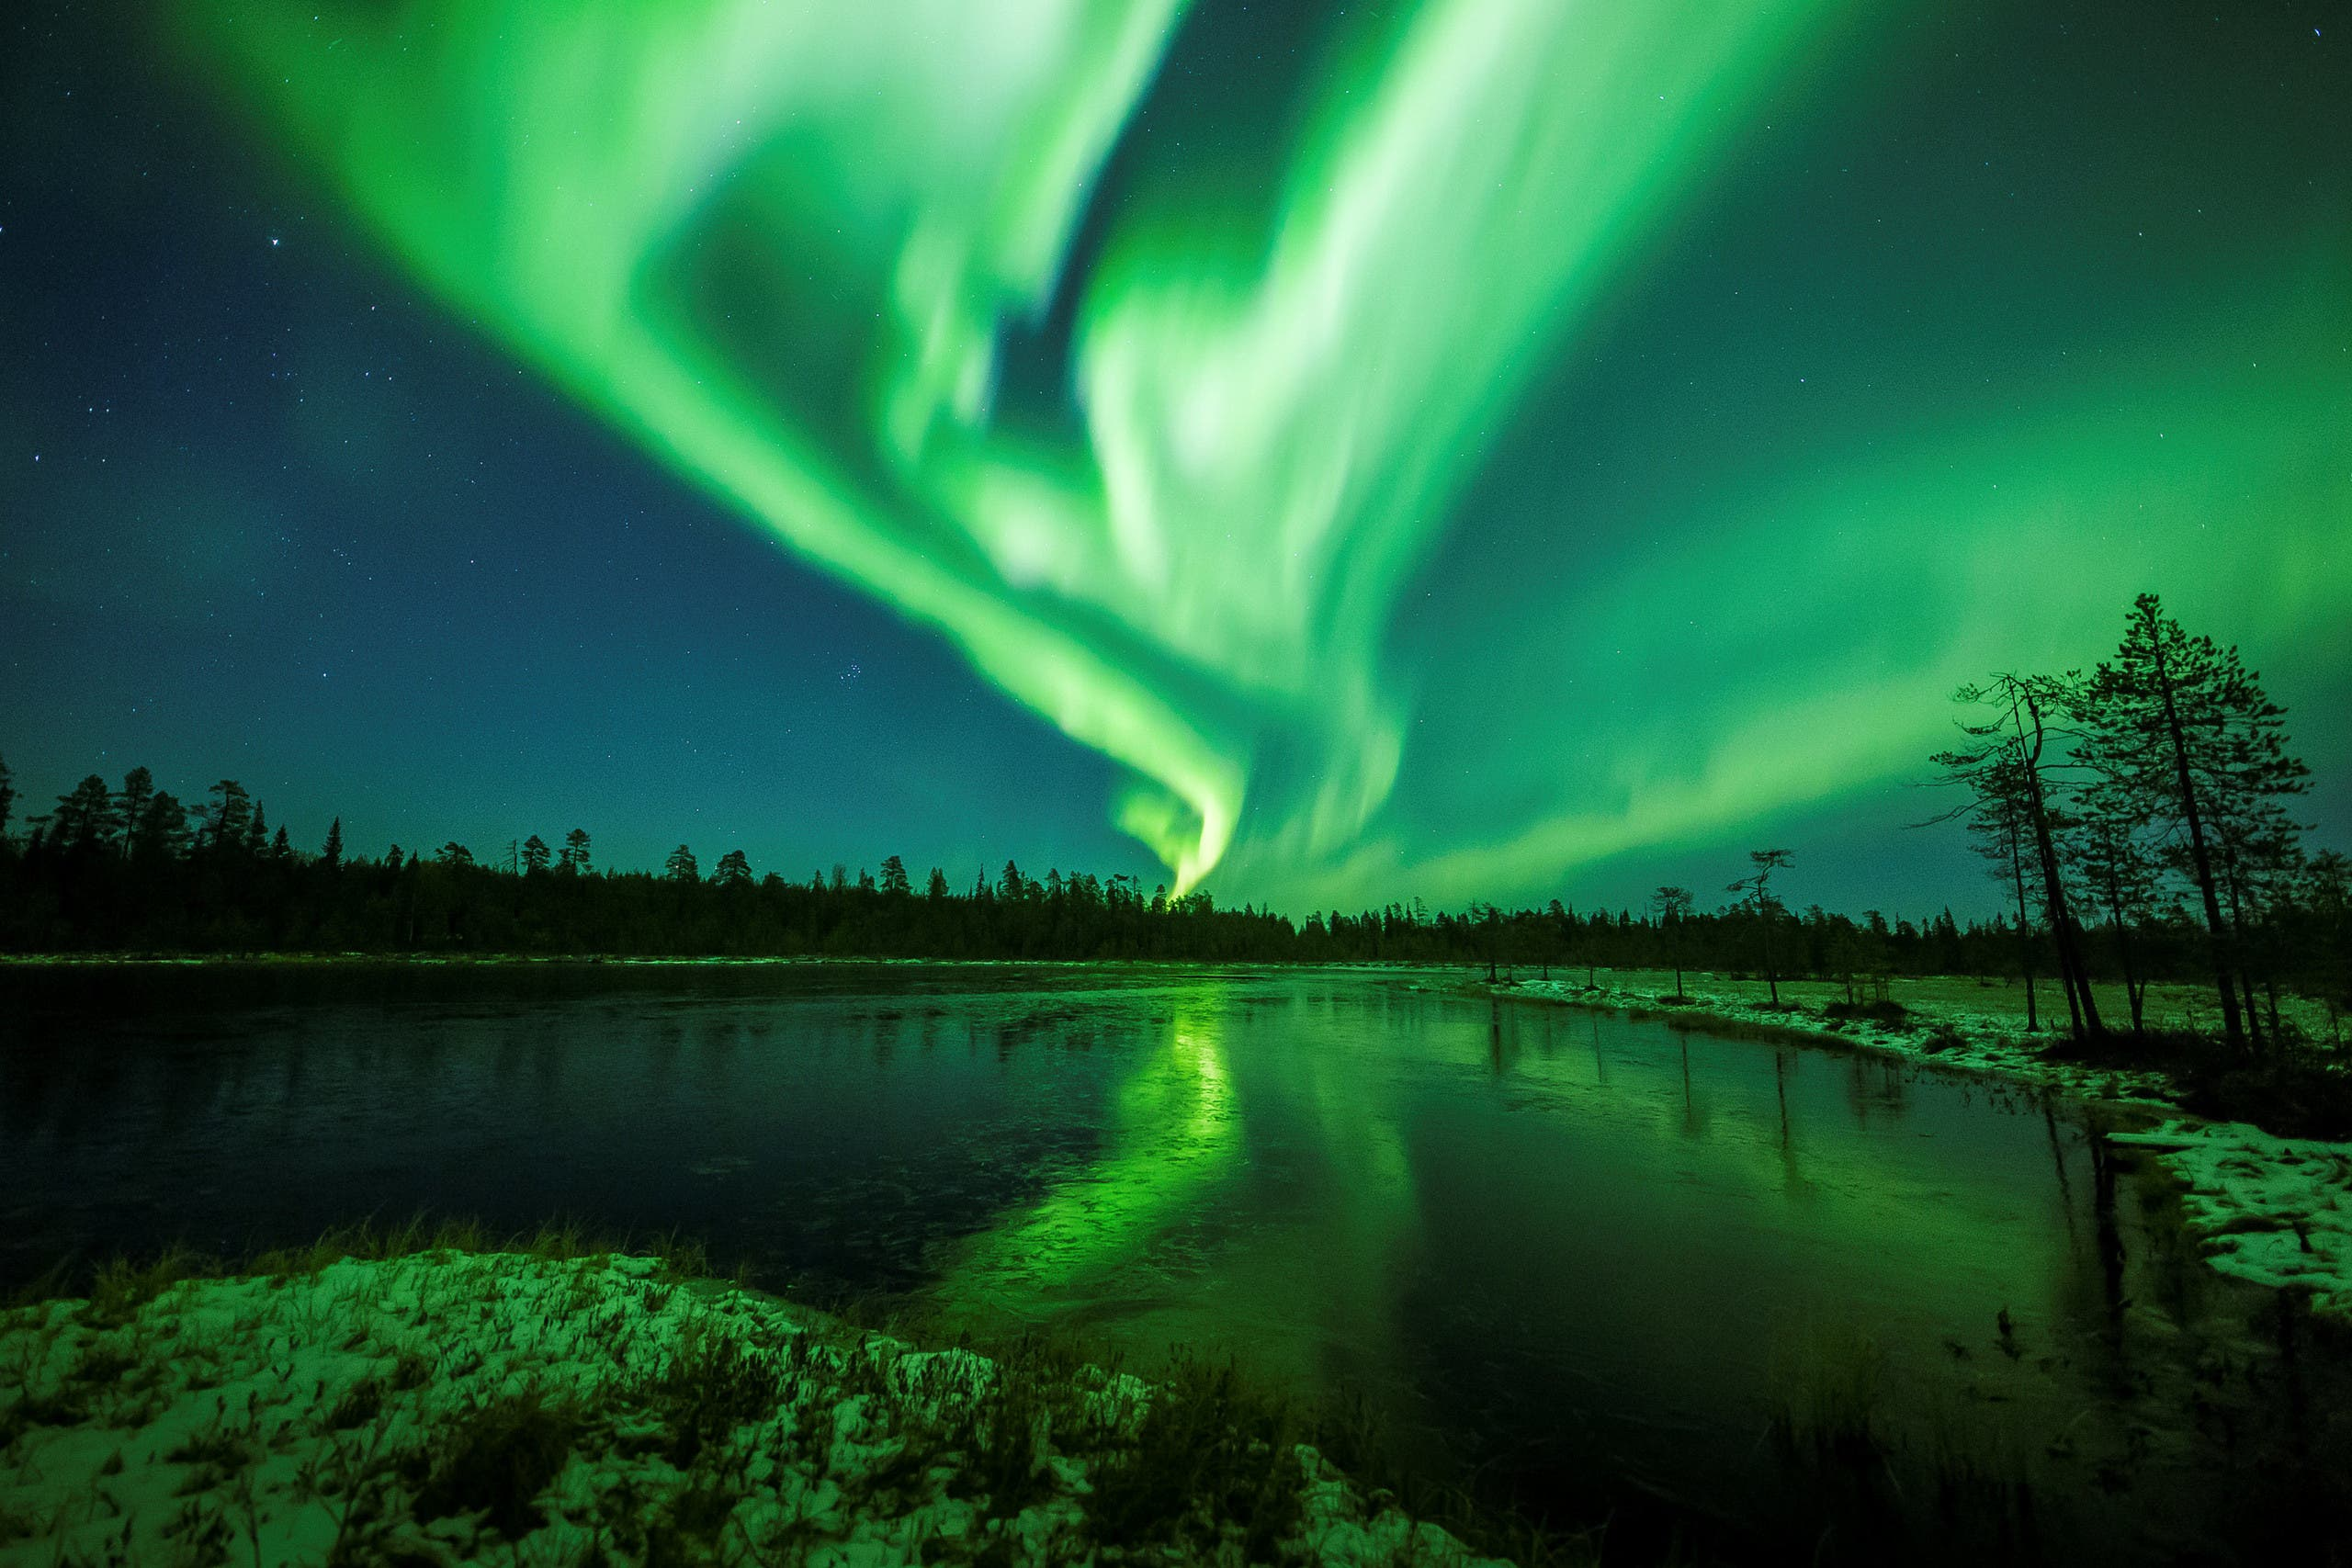 The Aurora Borealis (Northern Lights) is seen over the sky near Rovaniemi in Lapland, Finland, October 7, 2018. (Image: Reuters)